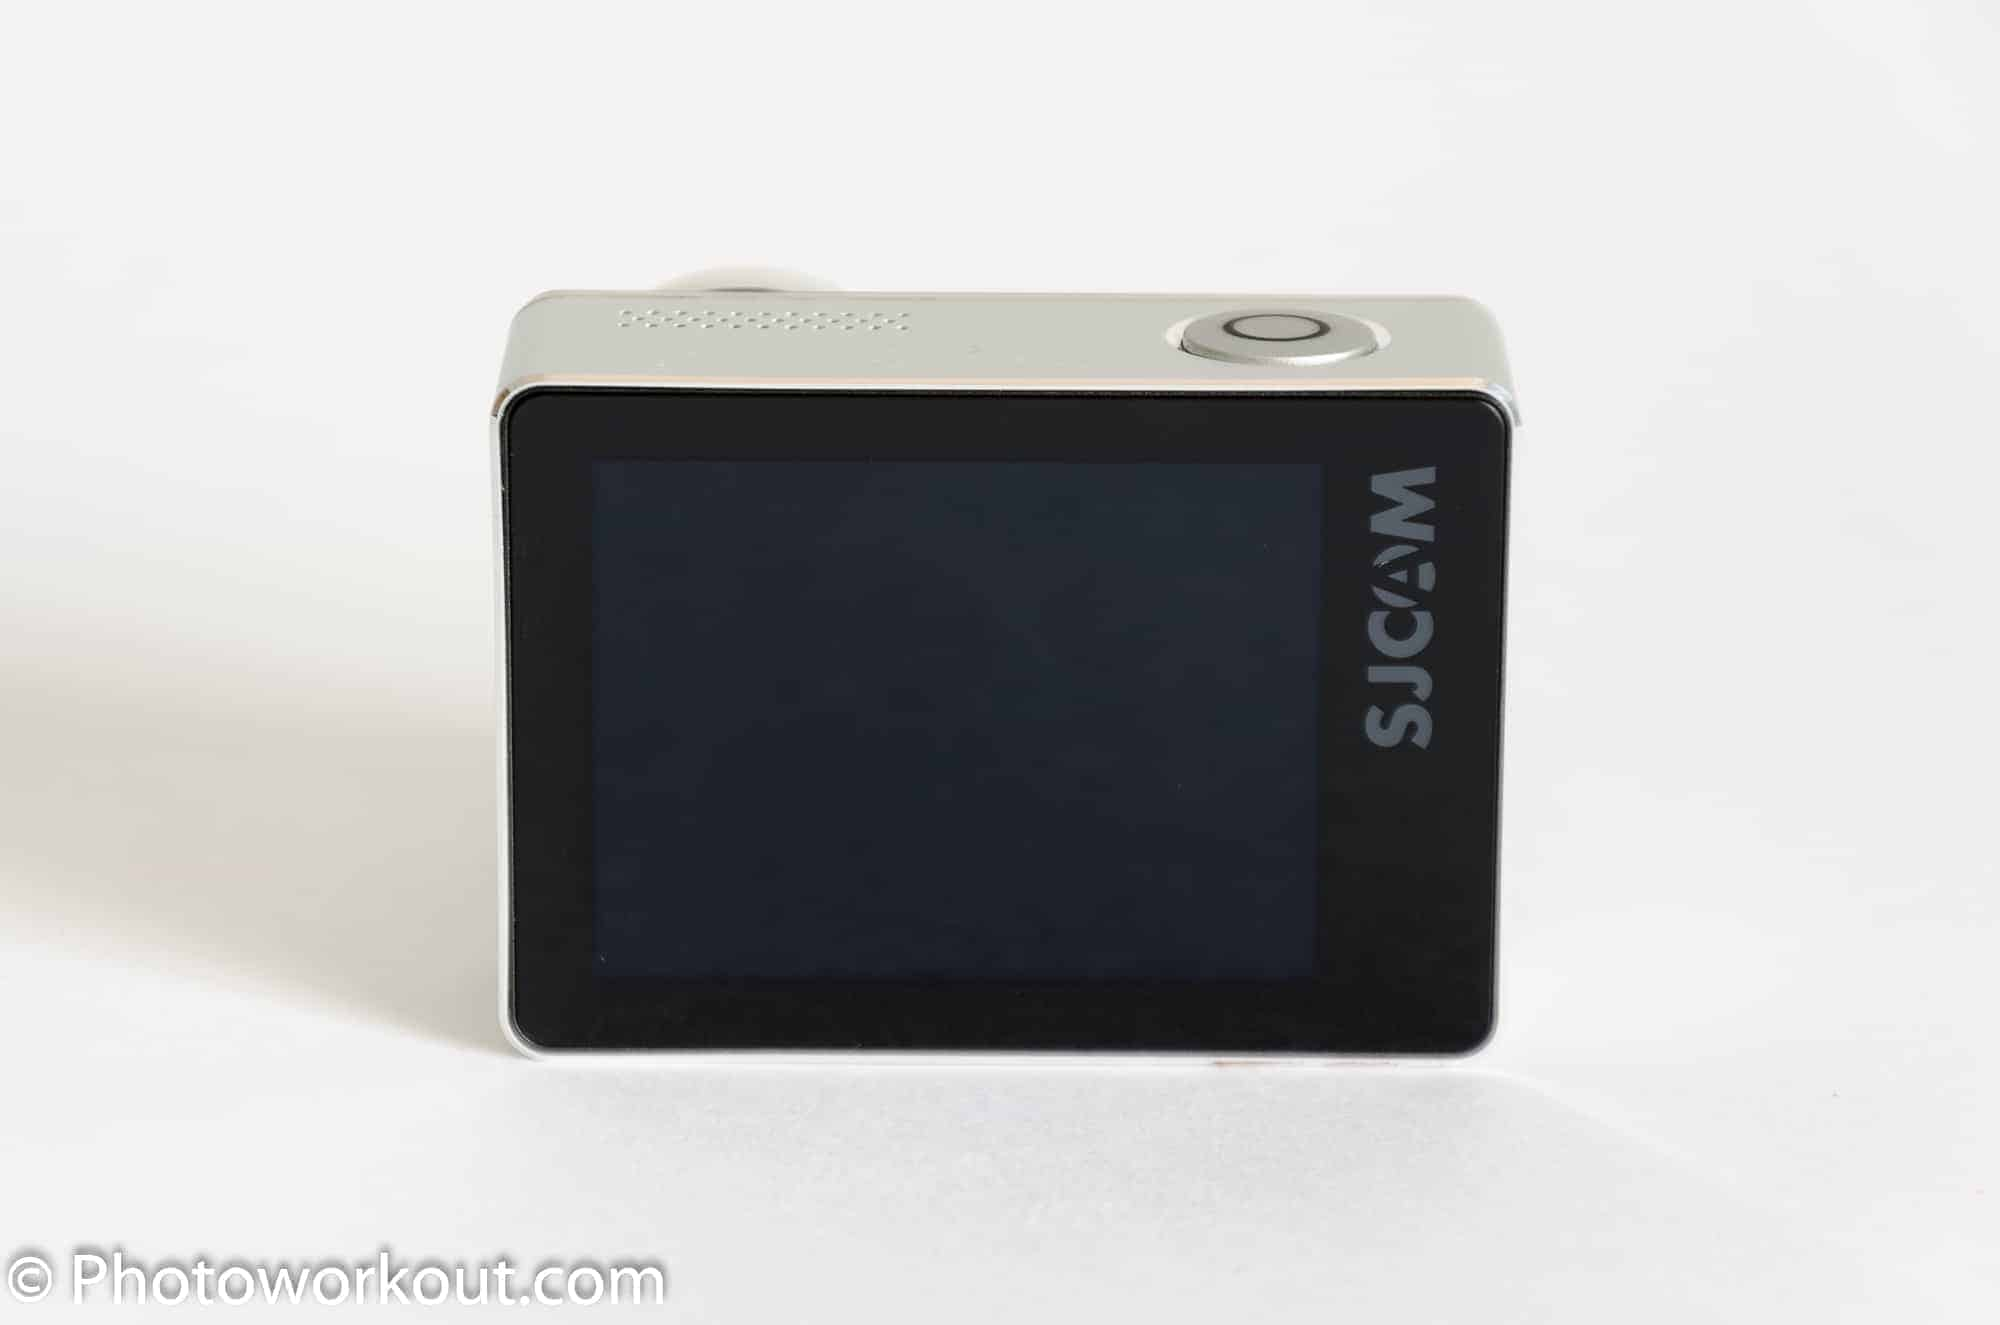 SJCam SJ7 Star rear view